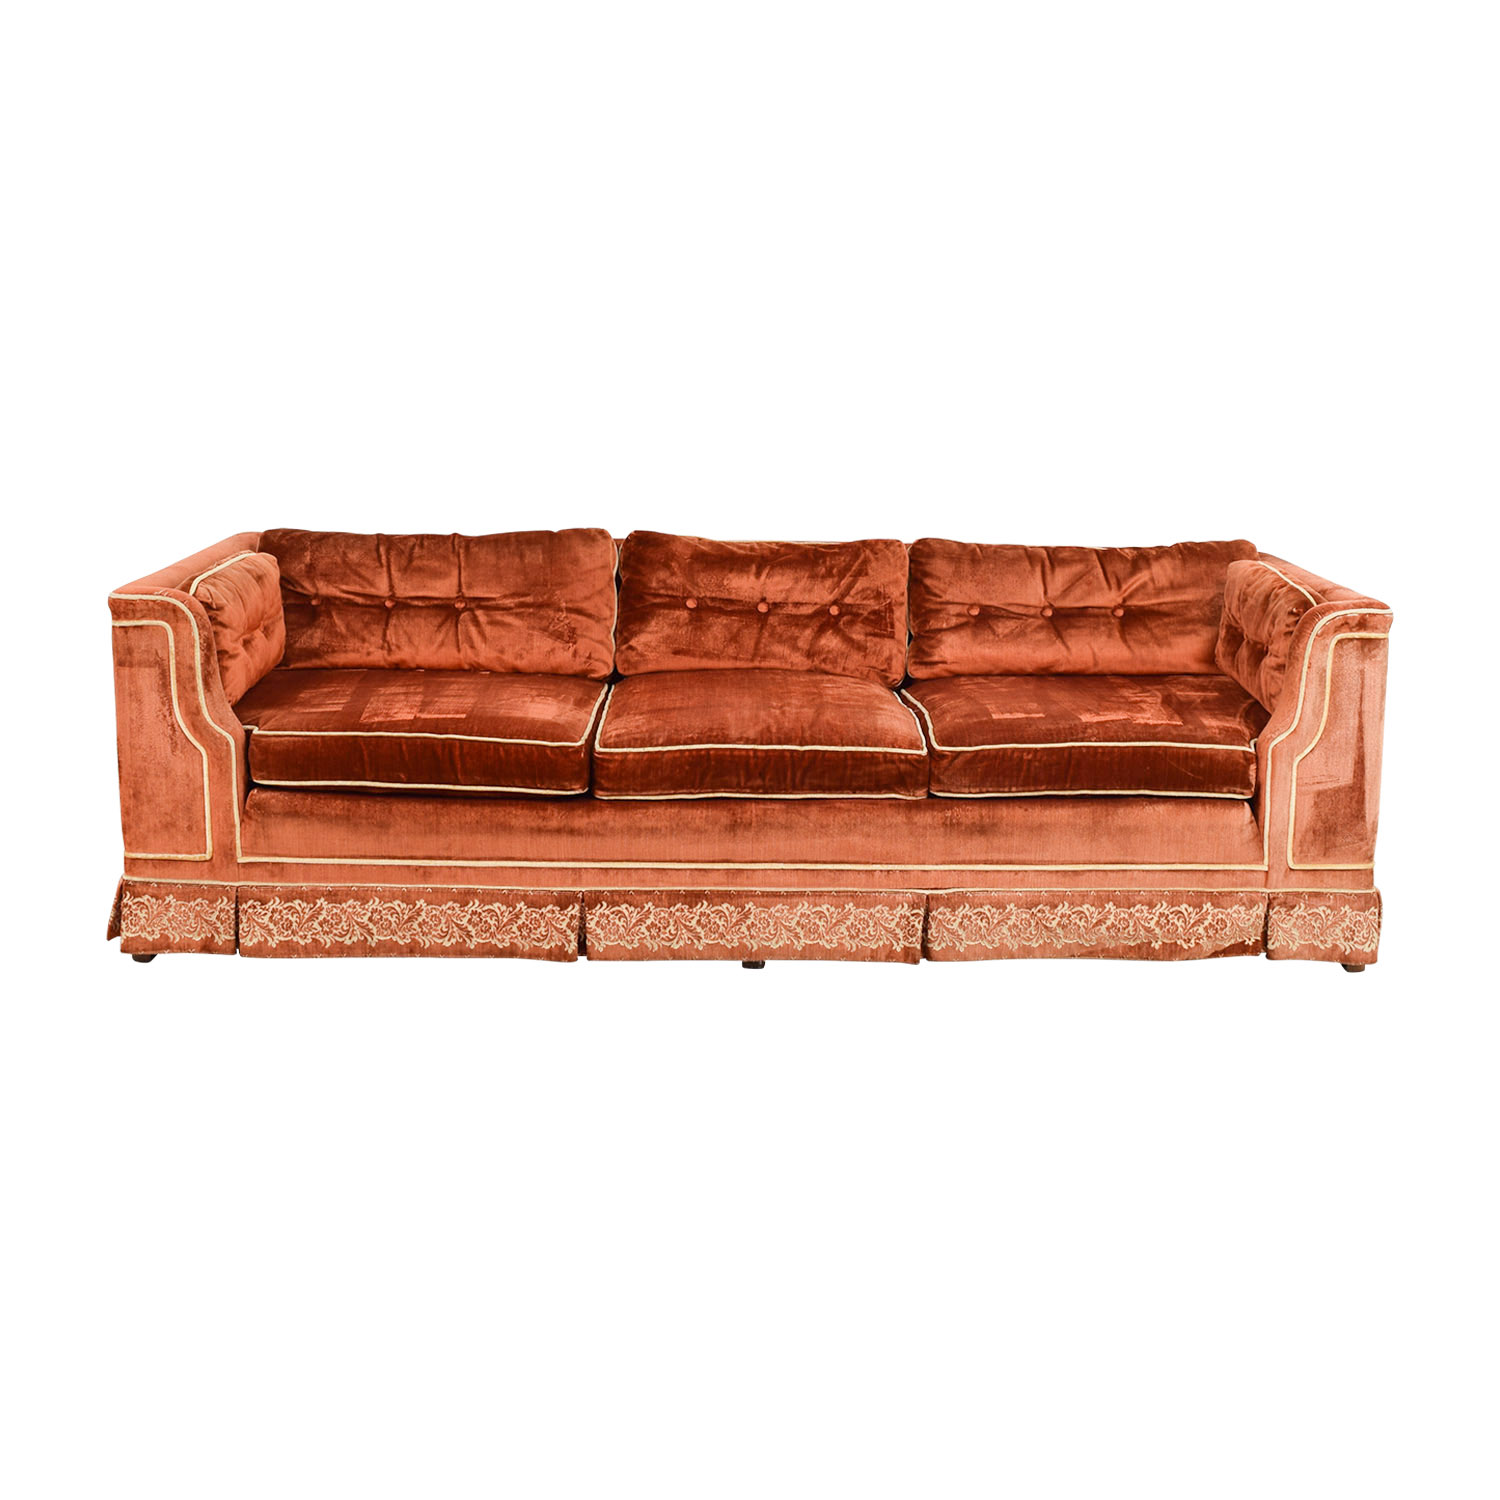 Orange Red Tufted Three-Cushion Sofa with Border Embroidery on sale